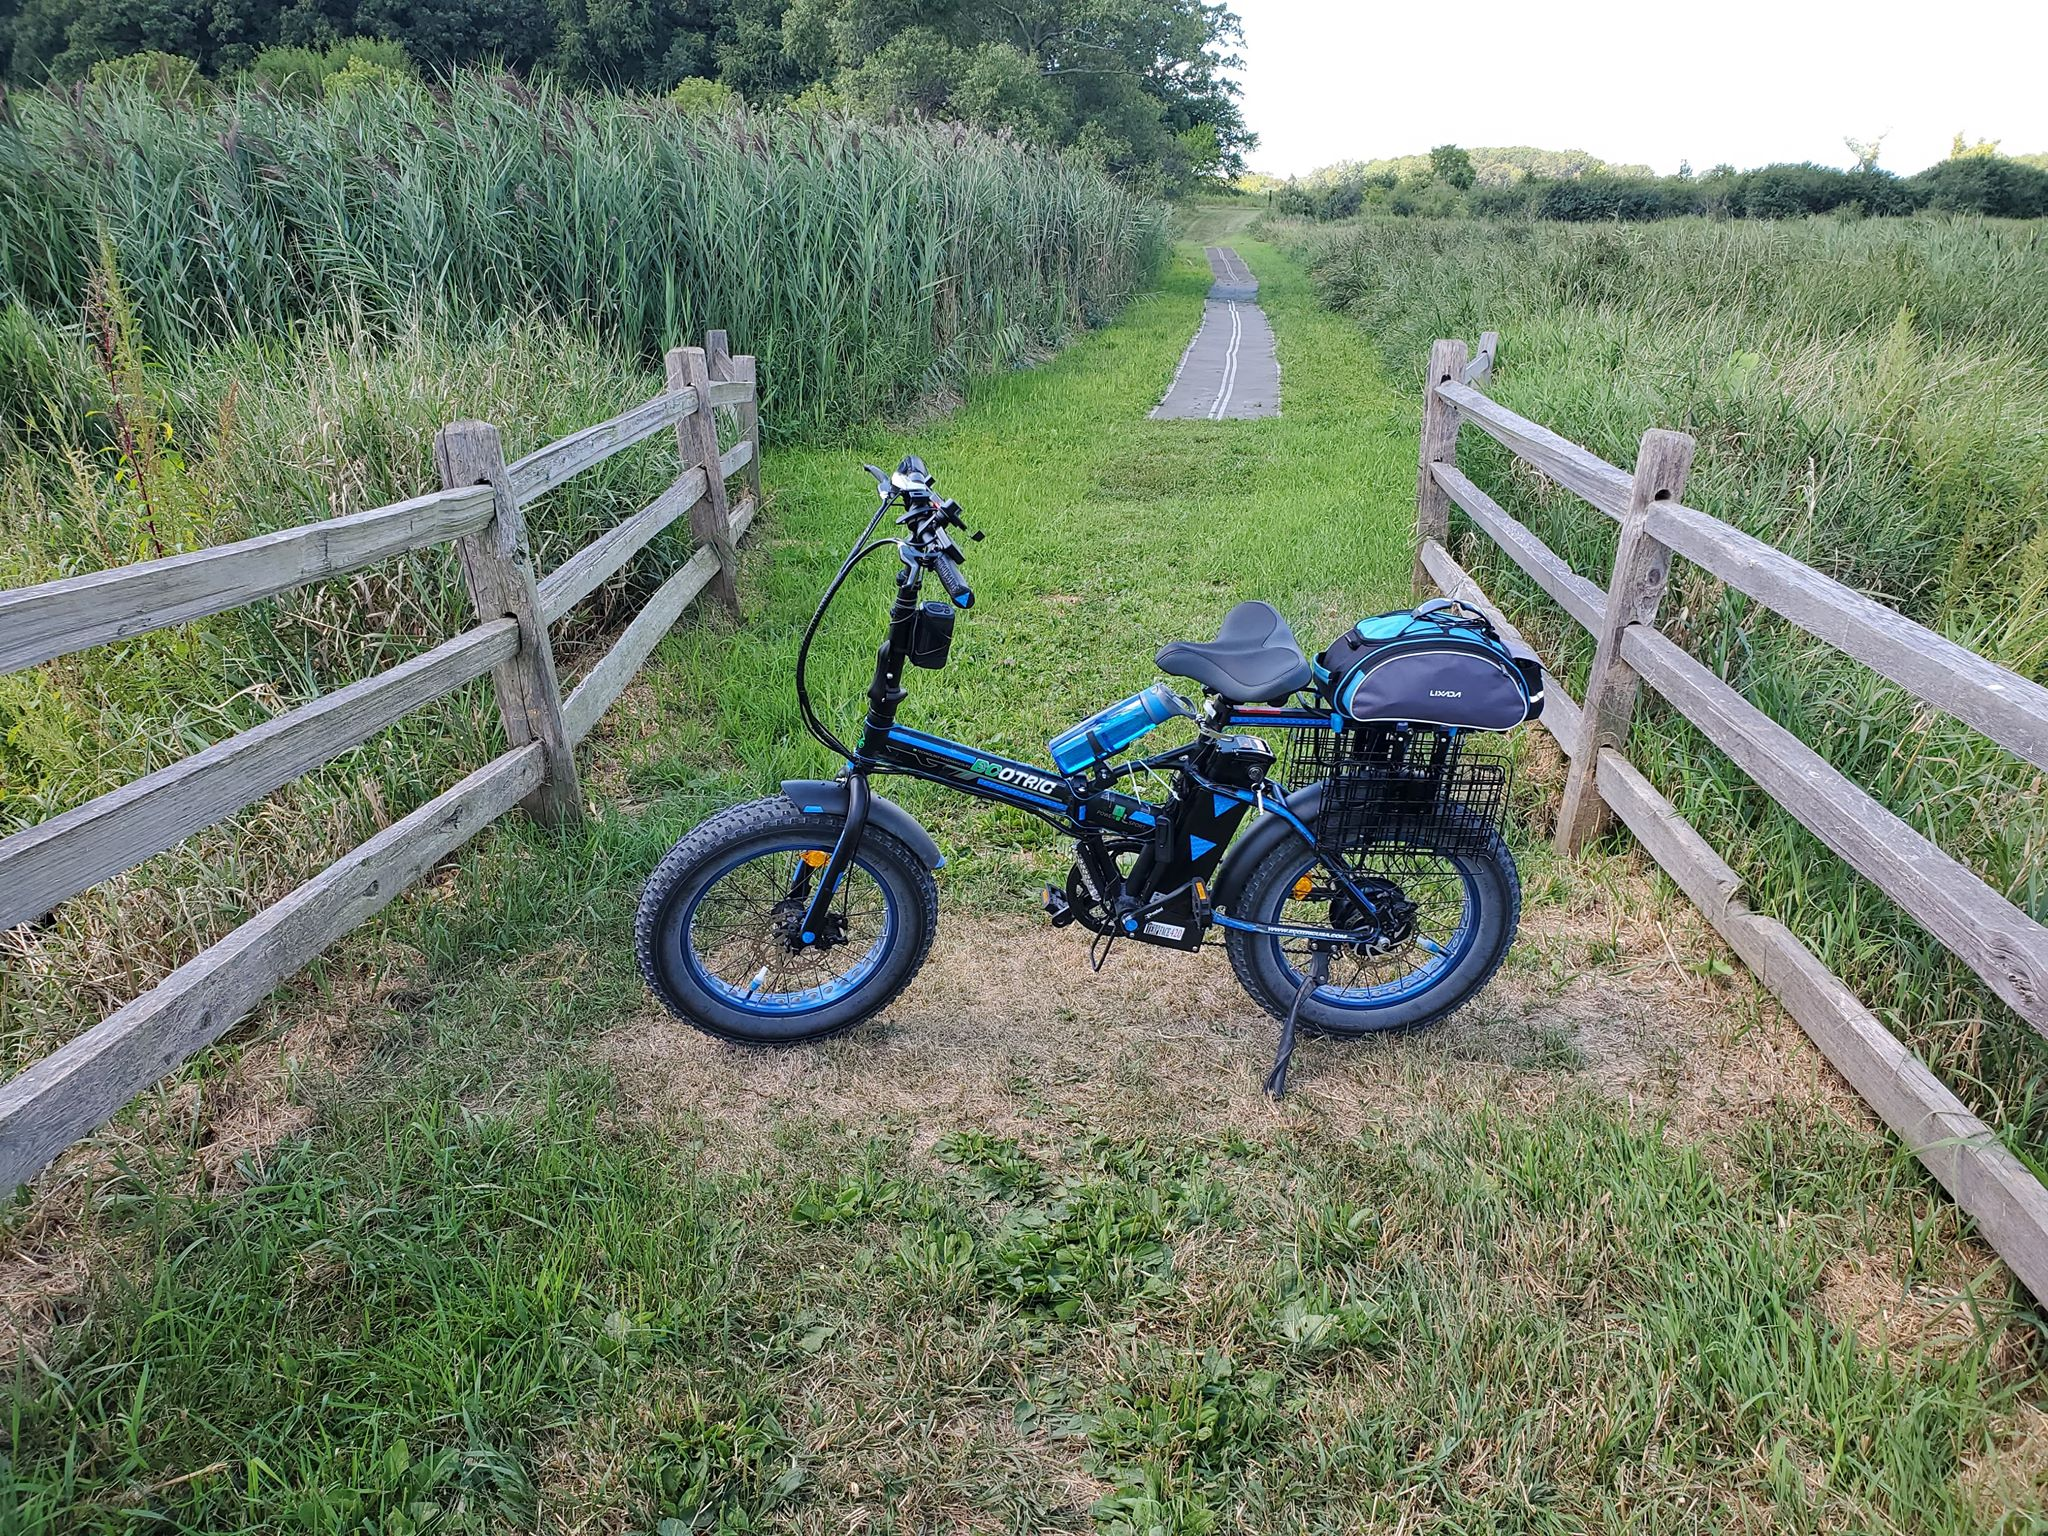 The electric bike is good for your health